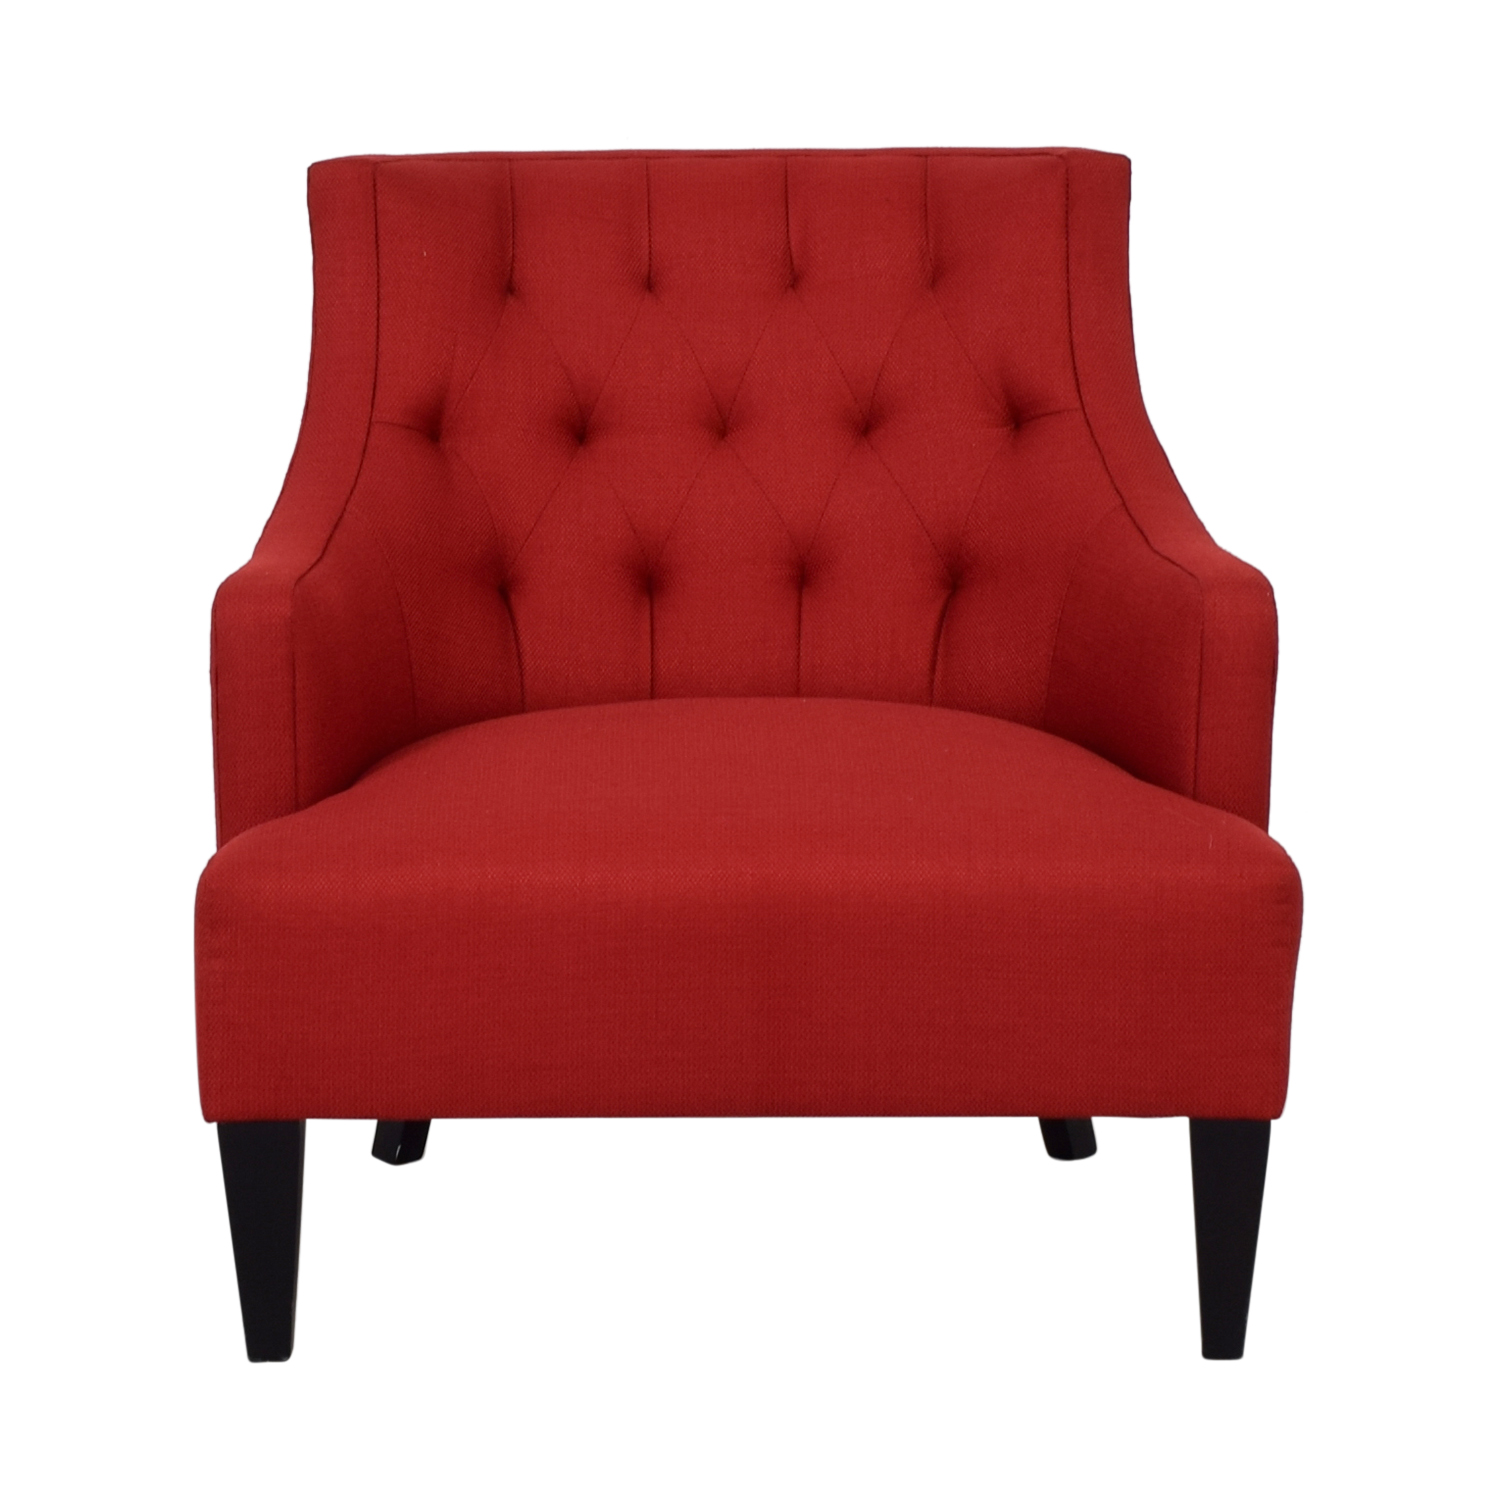 Picture of: 70 Off Crate Barrel Crate Barrel Red Fabric Accent Chair Chairs